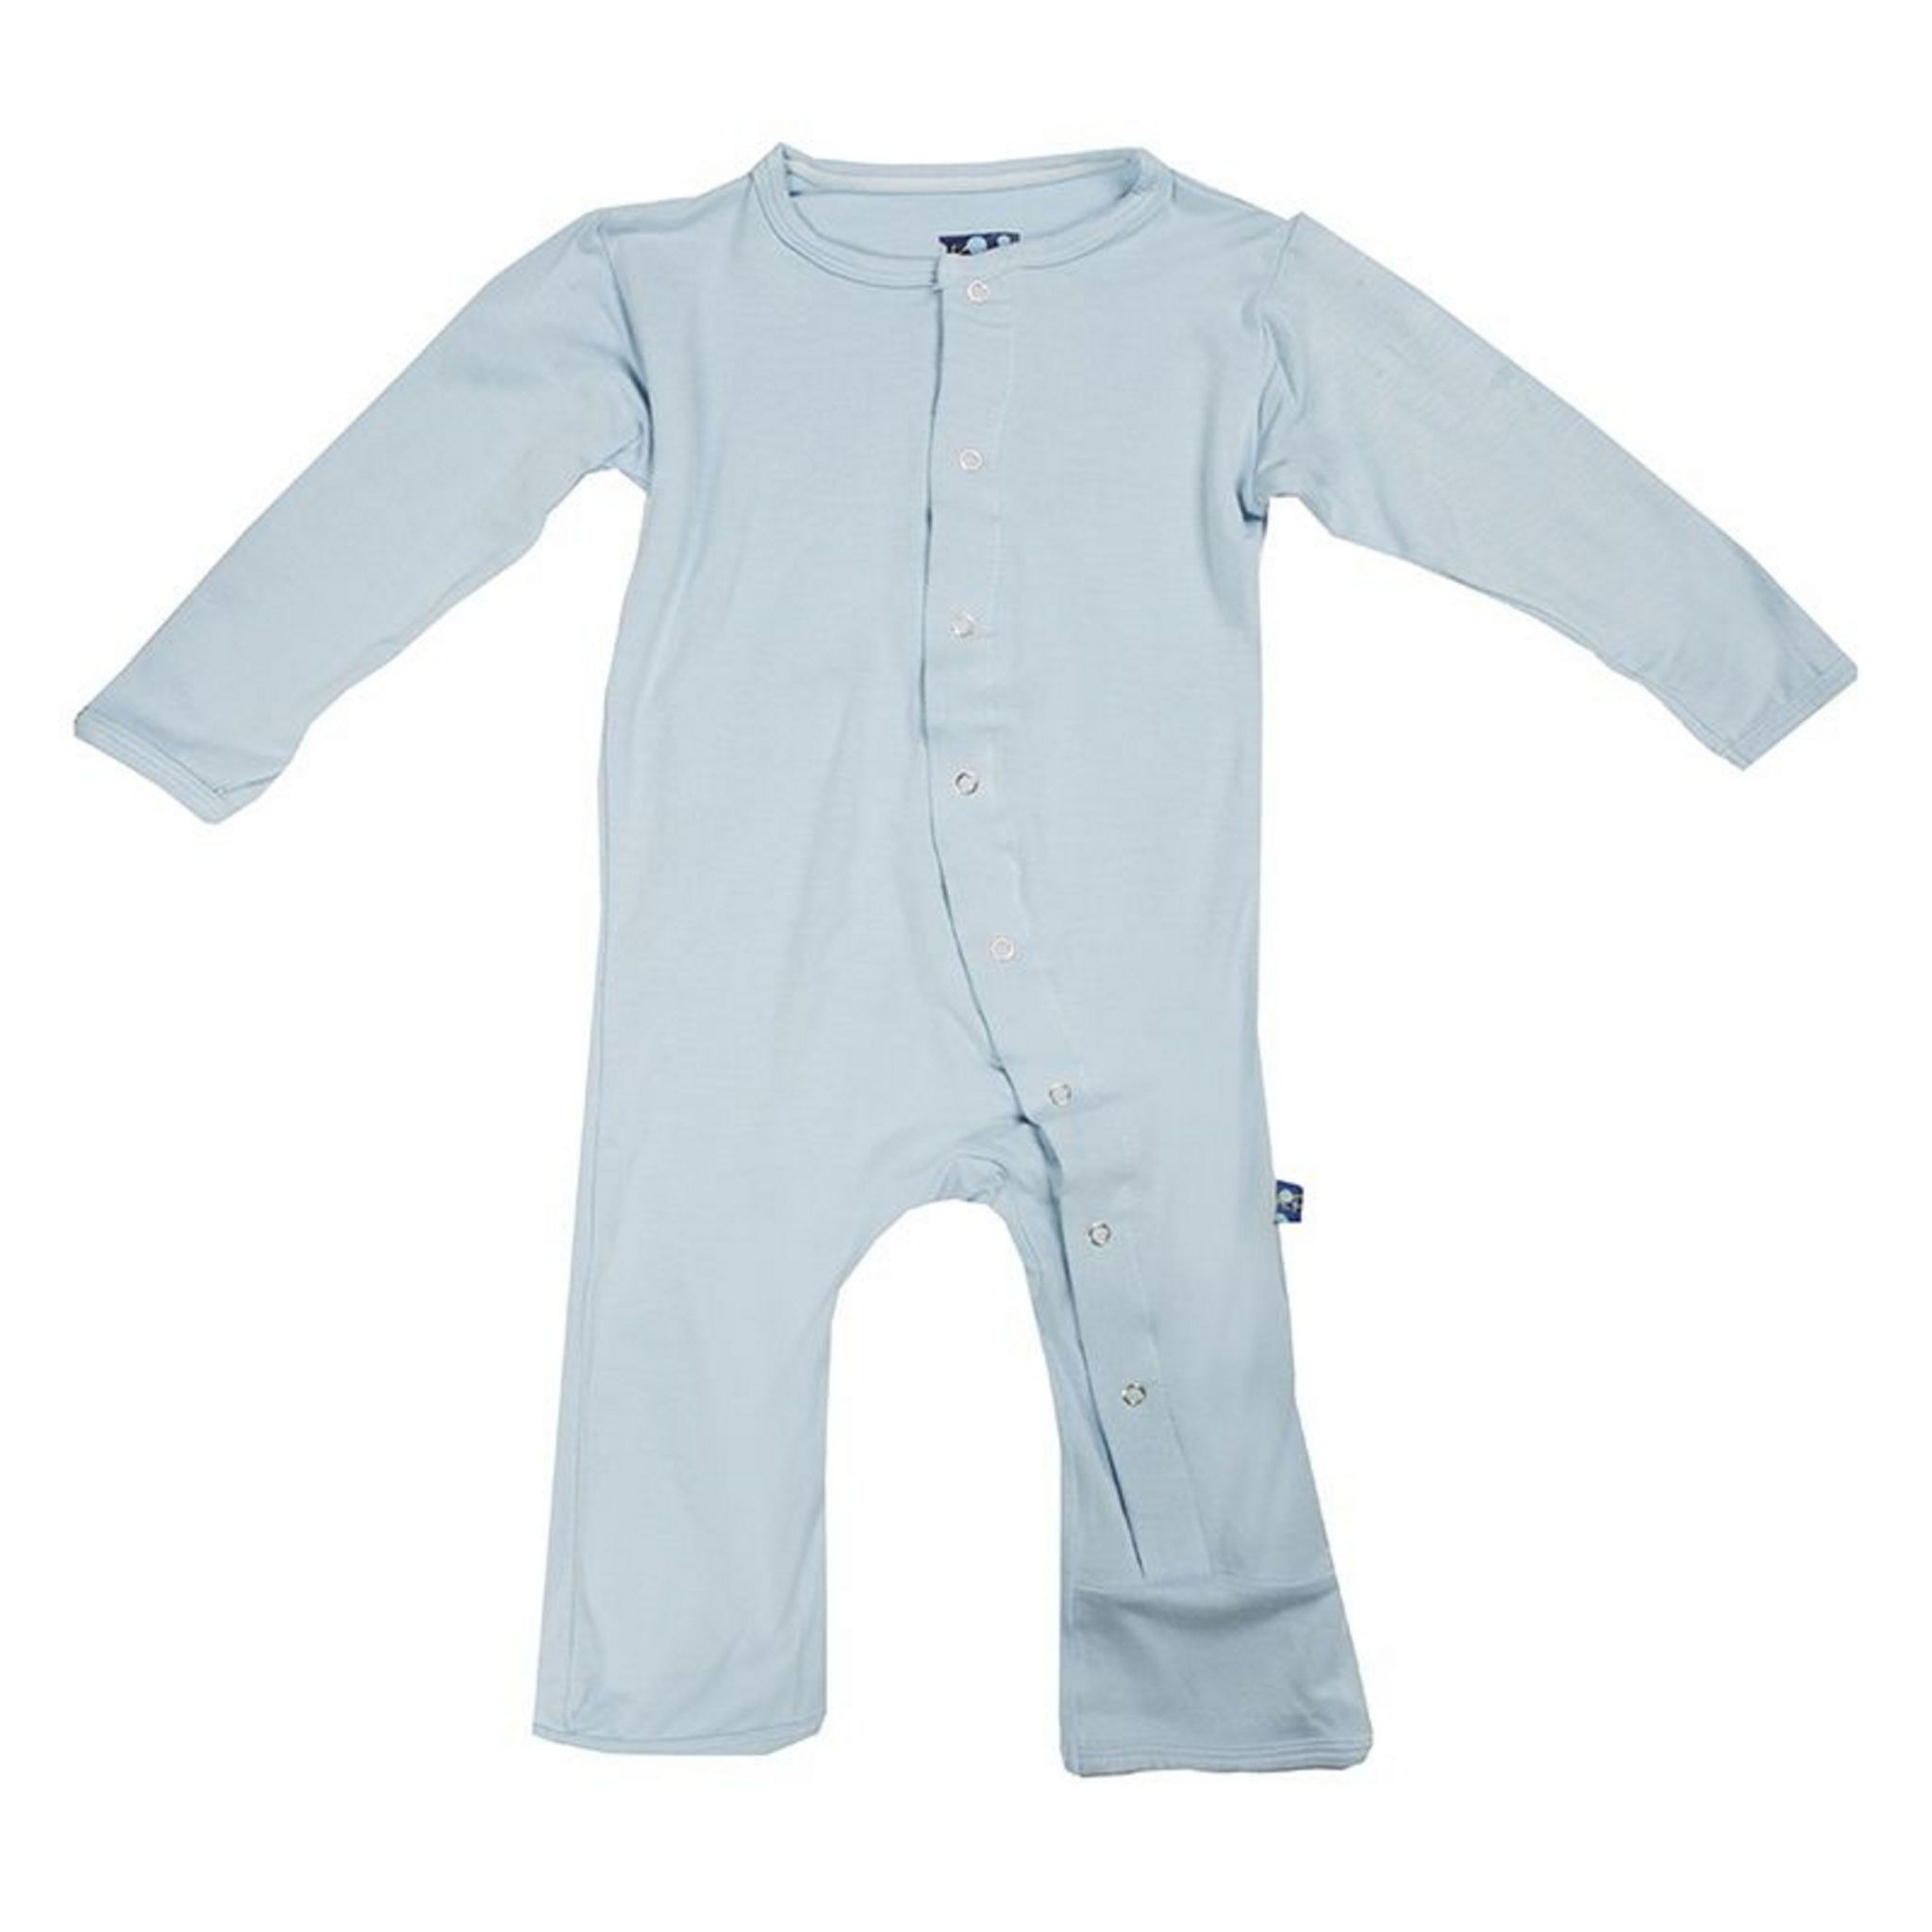 15f02c865 Kickee Pants Basic Coverall | Products | Pants, Clothes, Fashion